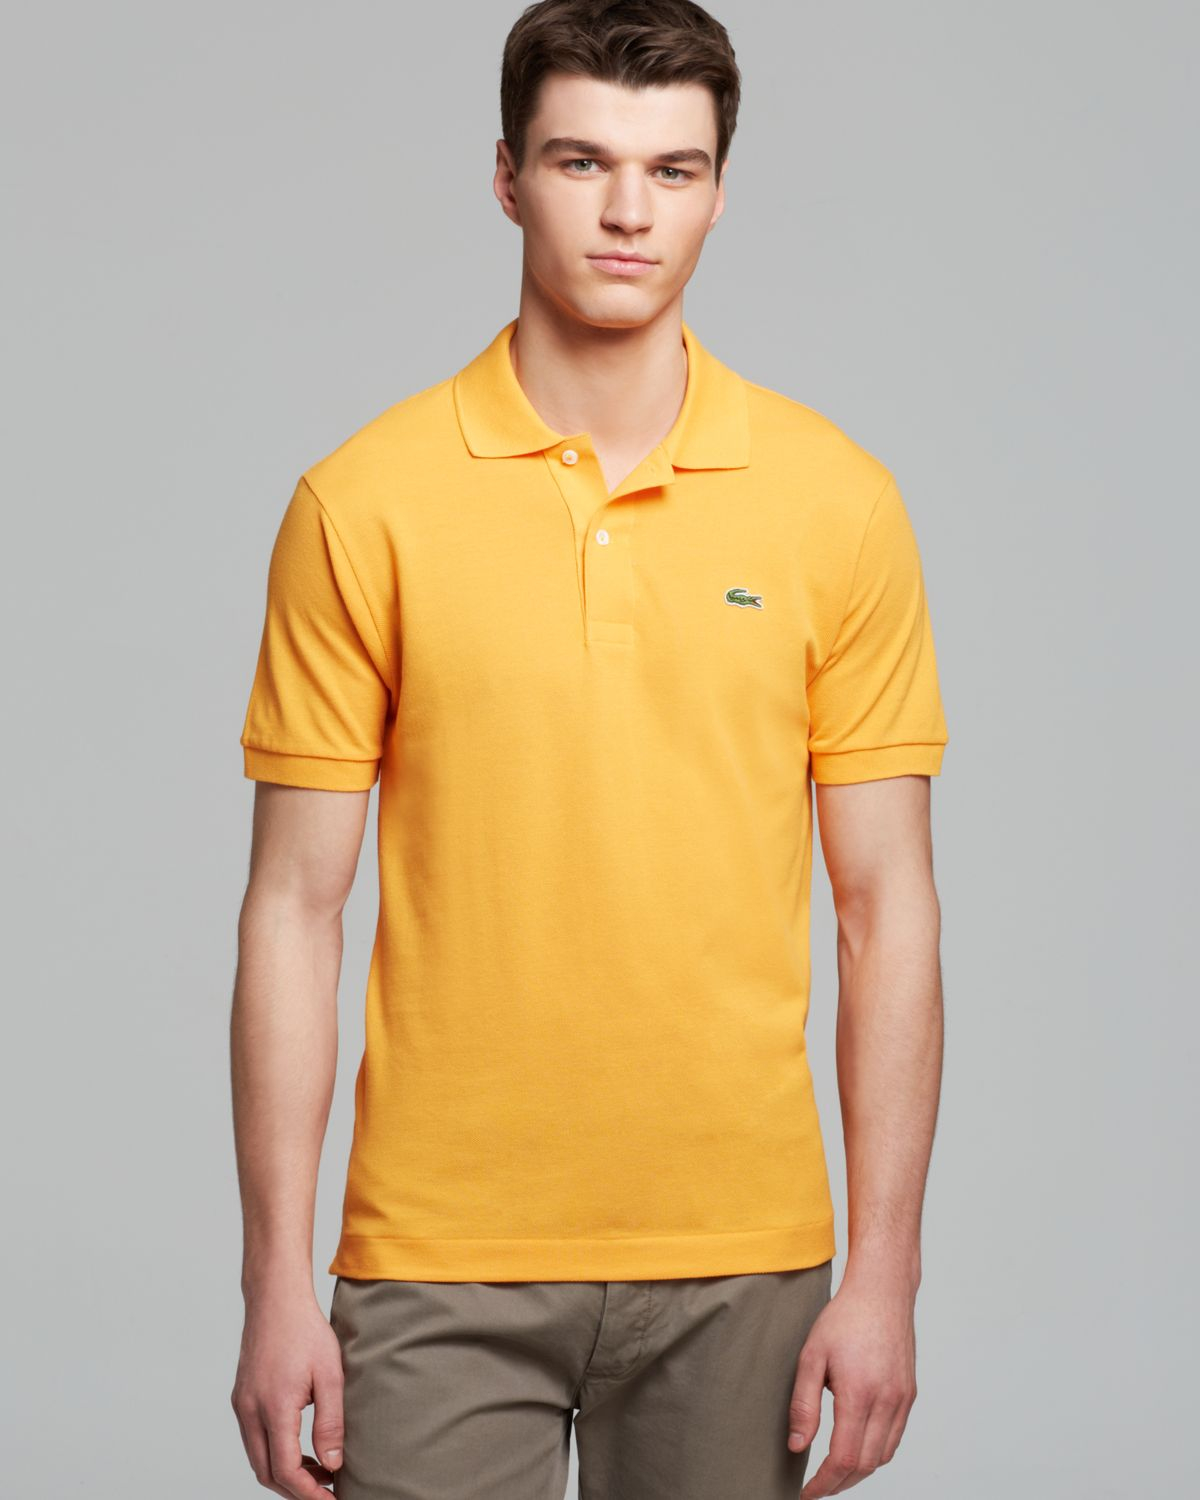 9969daaa5d41 Lyst - Lacoste Classic Short Sleeve Pique Polo Shirt in Yellow for Men